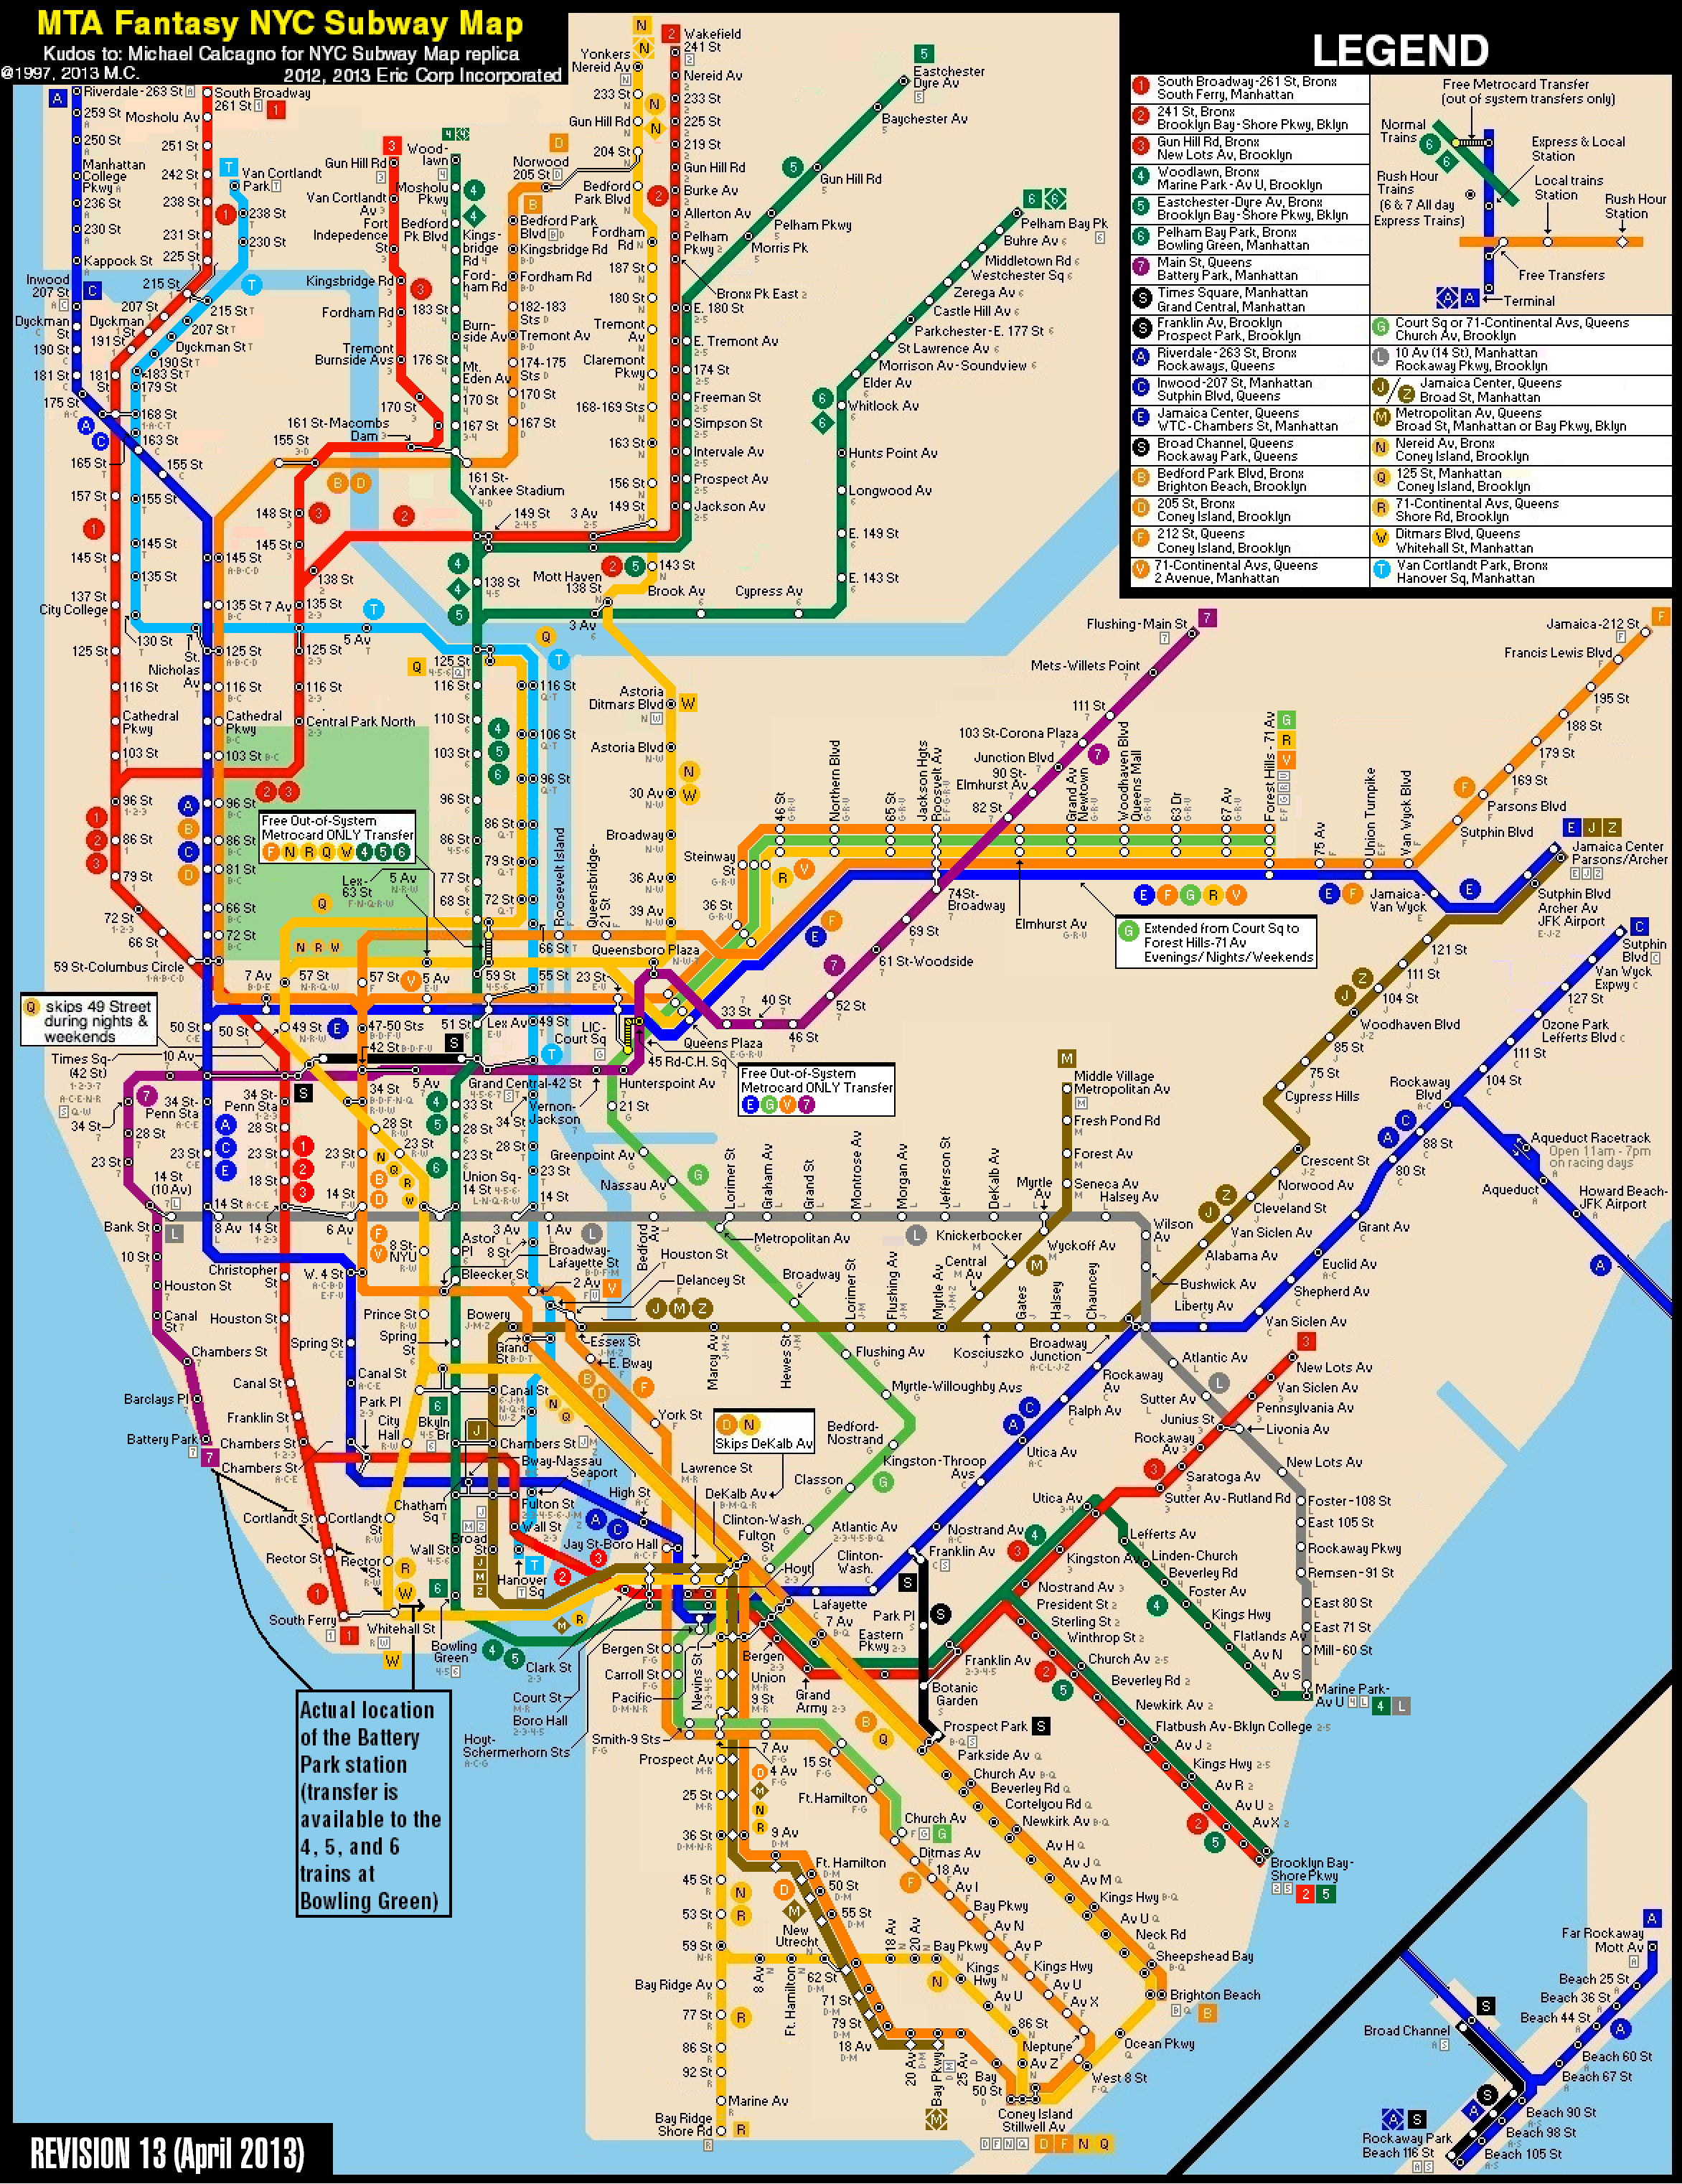 New York Subway Map New York City Subway Fantasy Map Revision 13